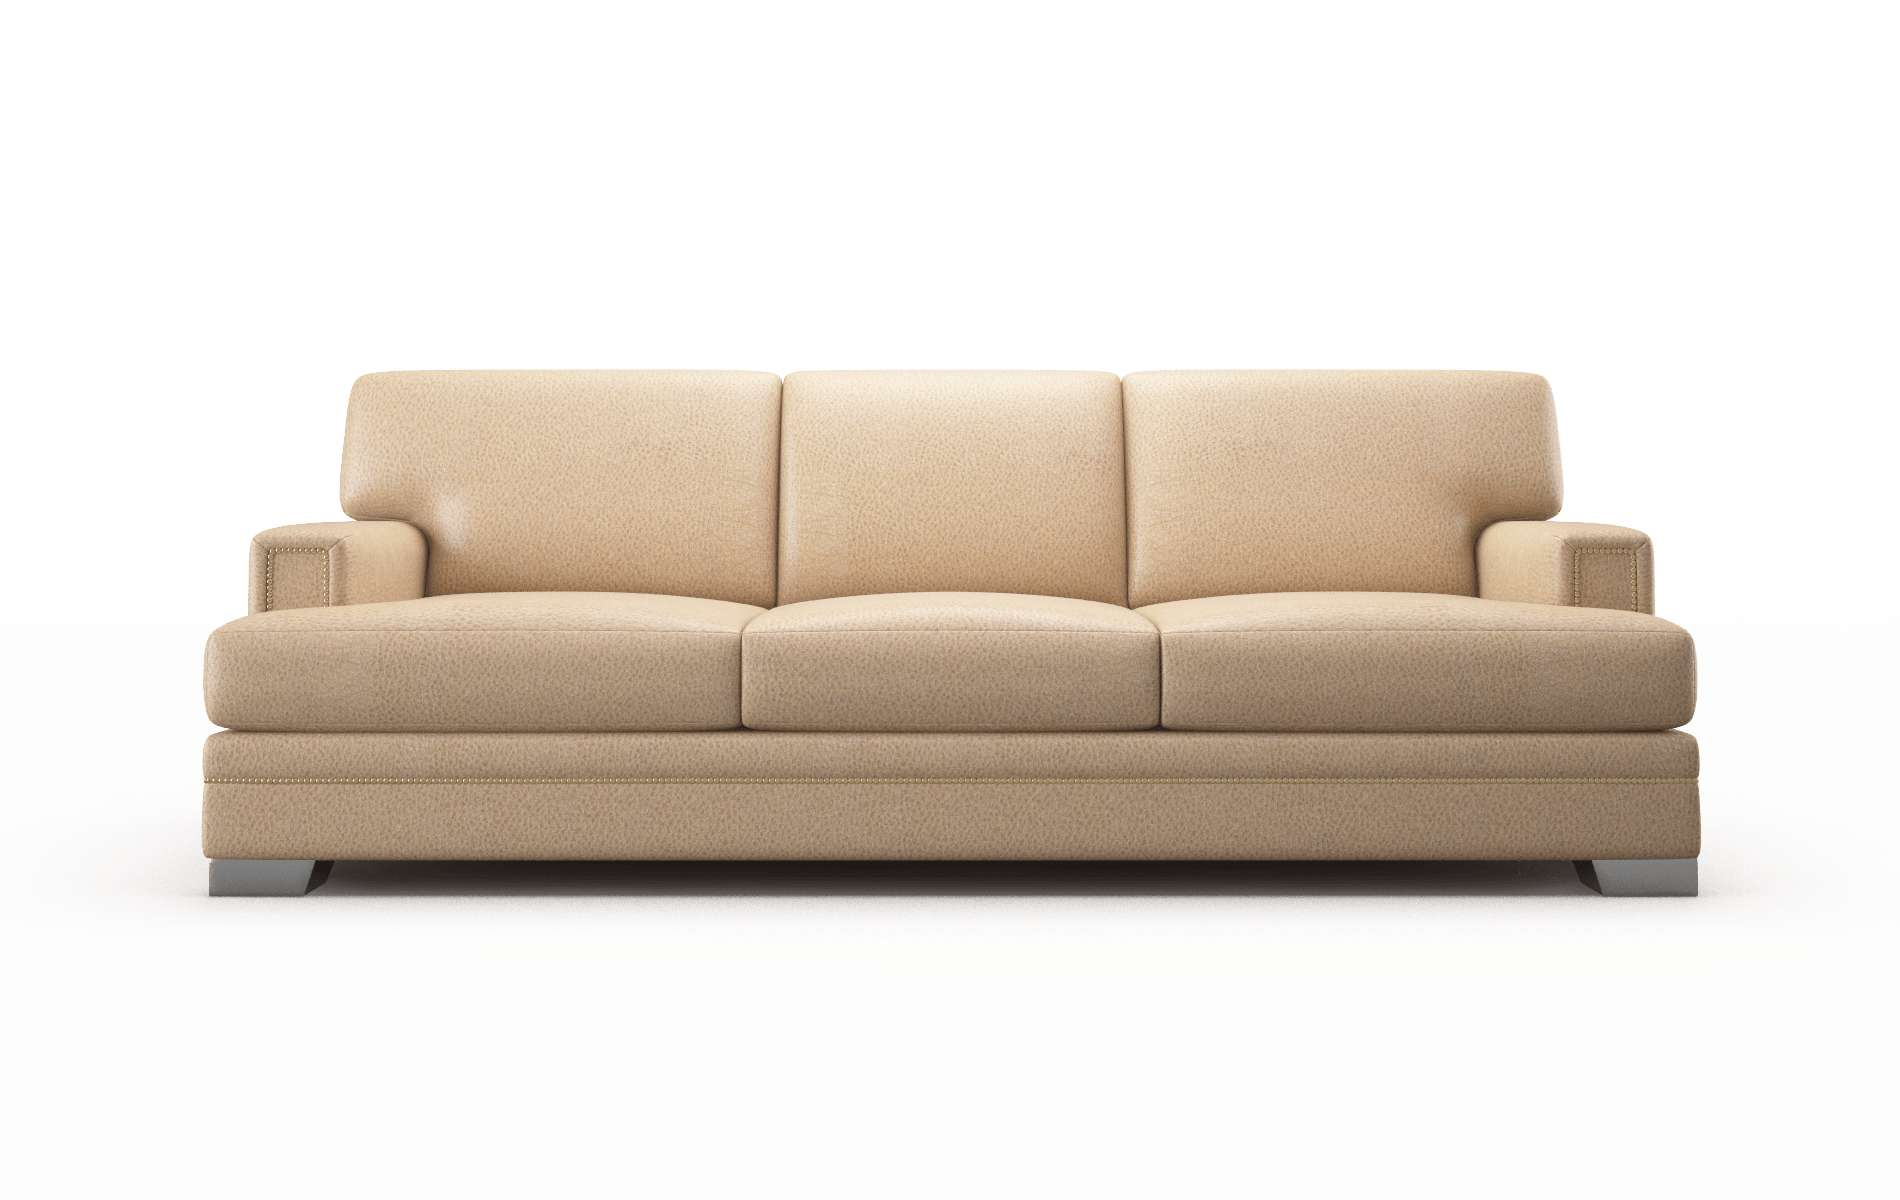 Barcelona Ford Dune Sofa metal legs 1